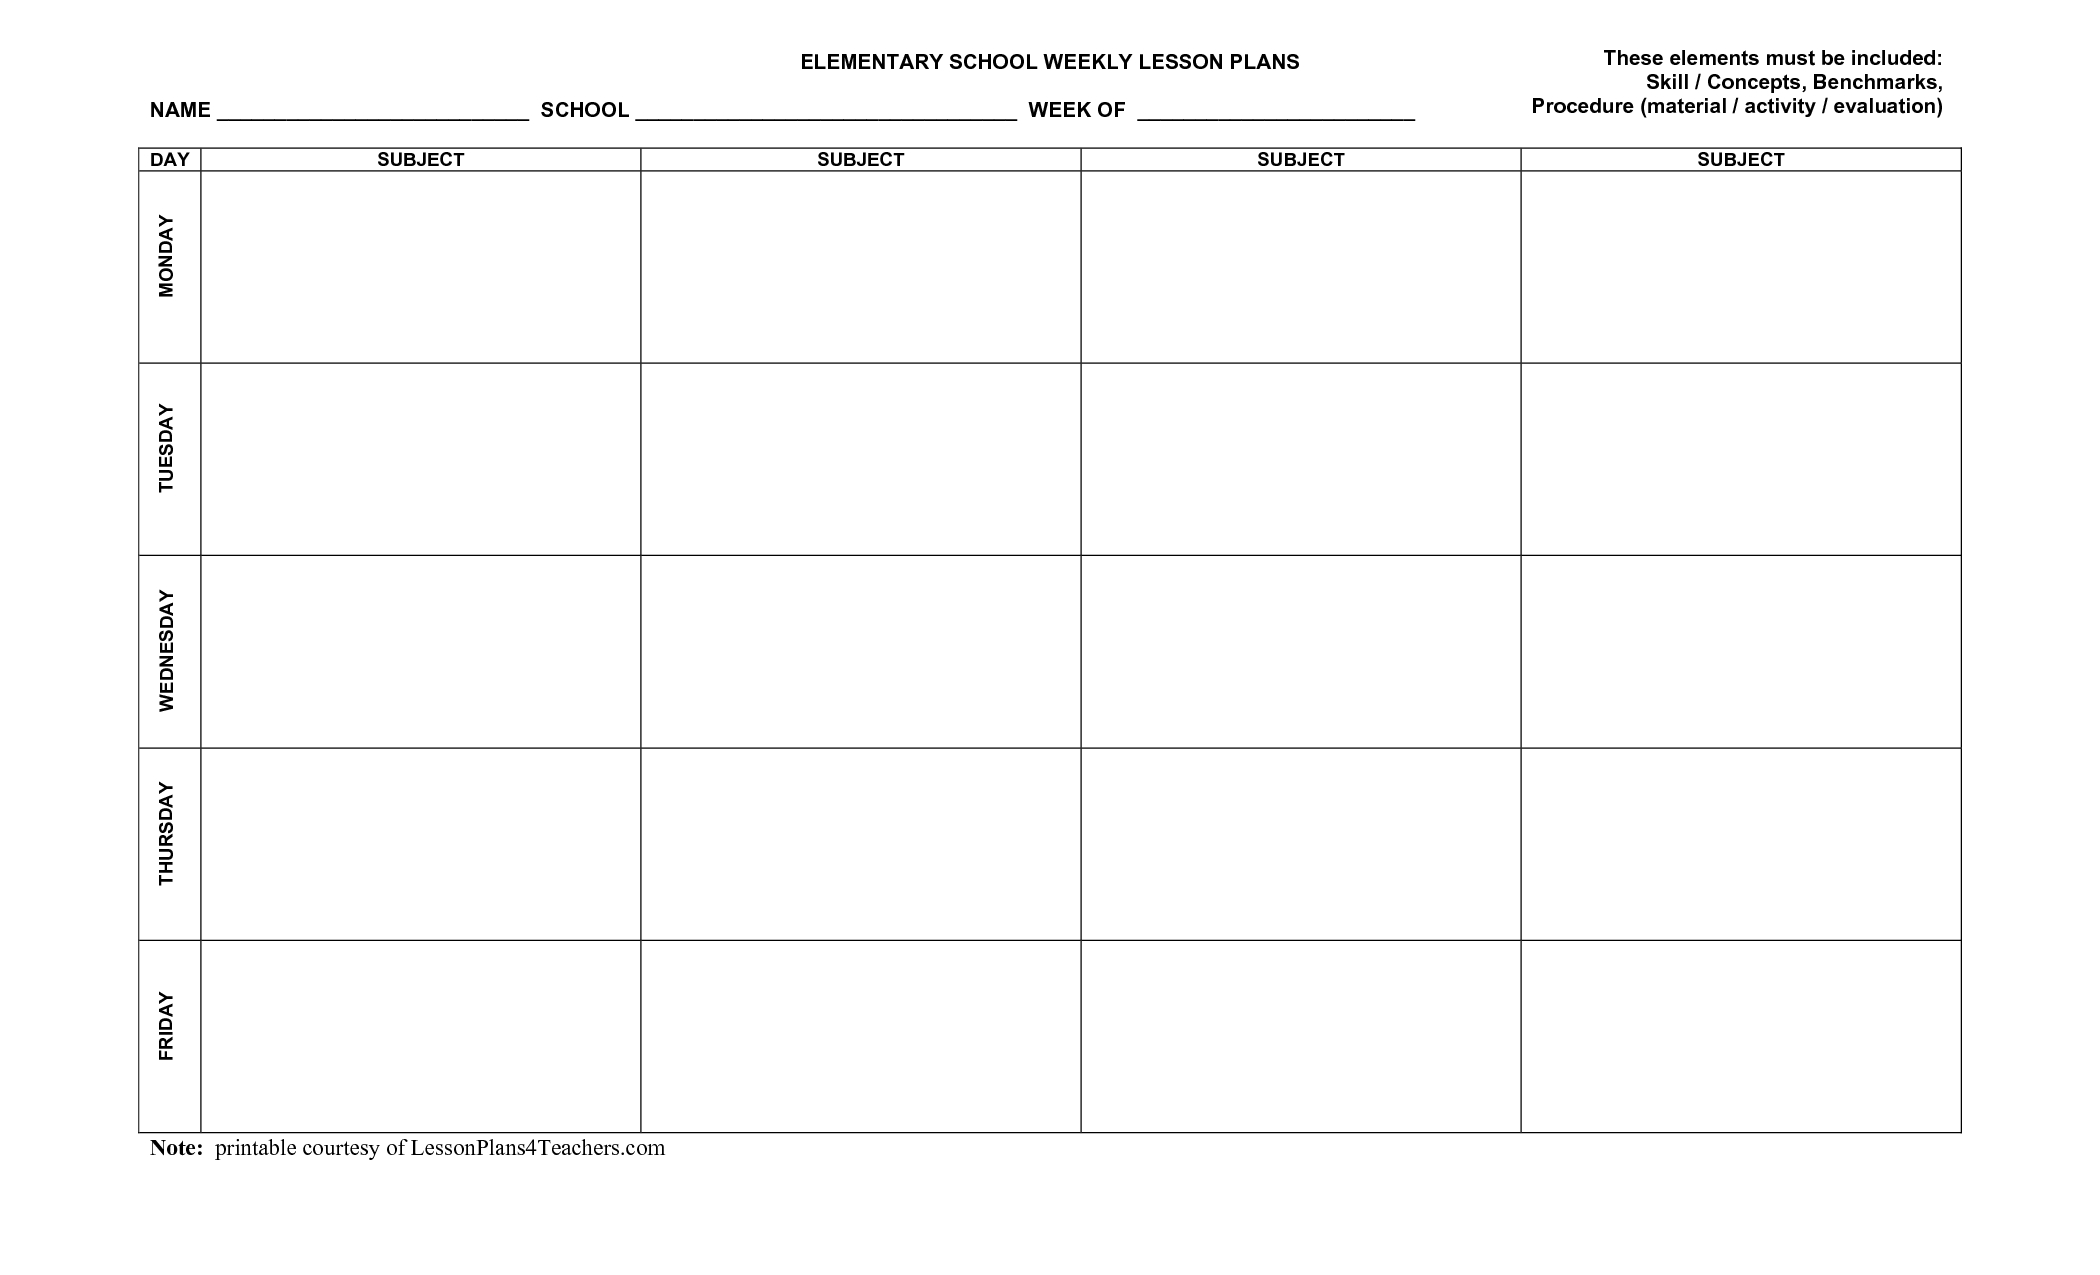 Pinterri Bagby On School Activities | Weekly Lesson Plan with Basic Lesson Plan Template Printable